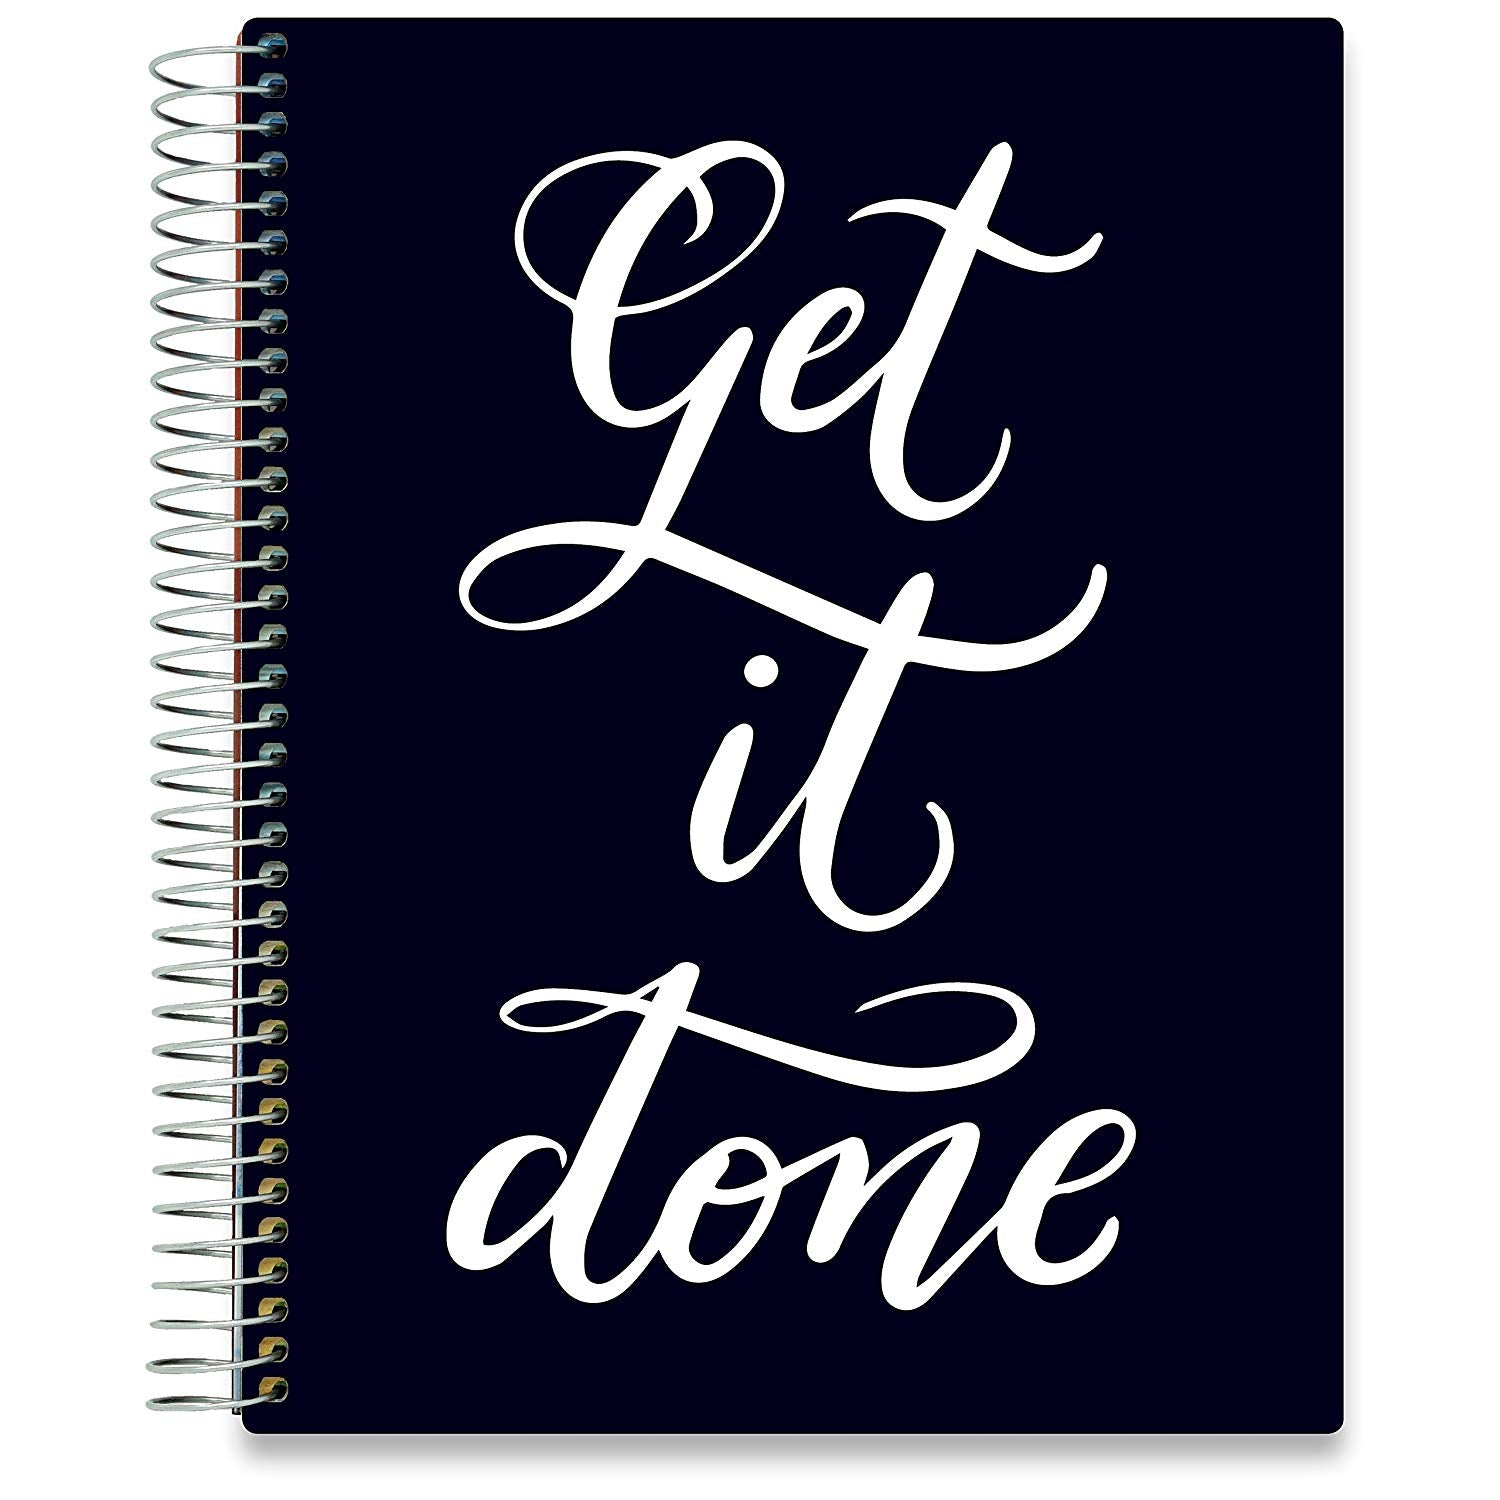 NEW: April 2020-2021 Planner - 8.5x11 - Get It Done-Office Product-Tools4Wisdom